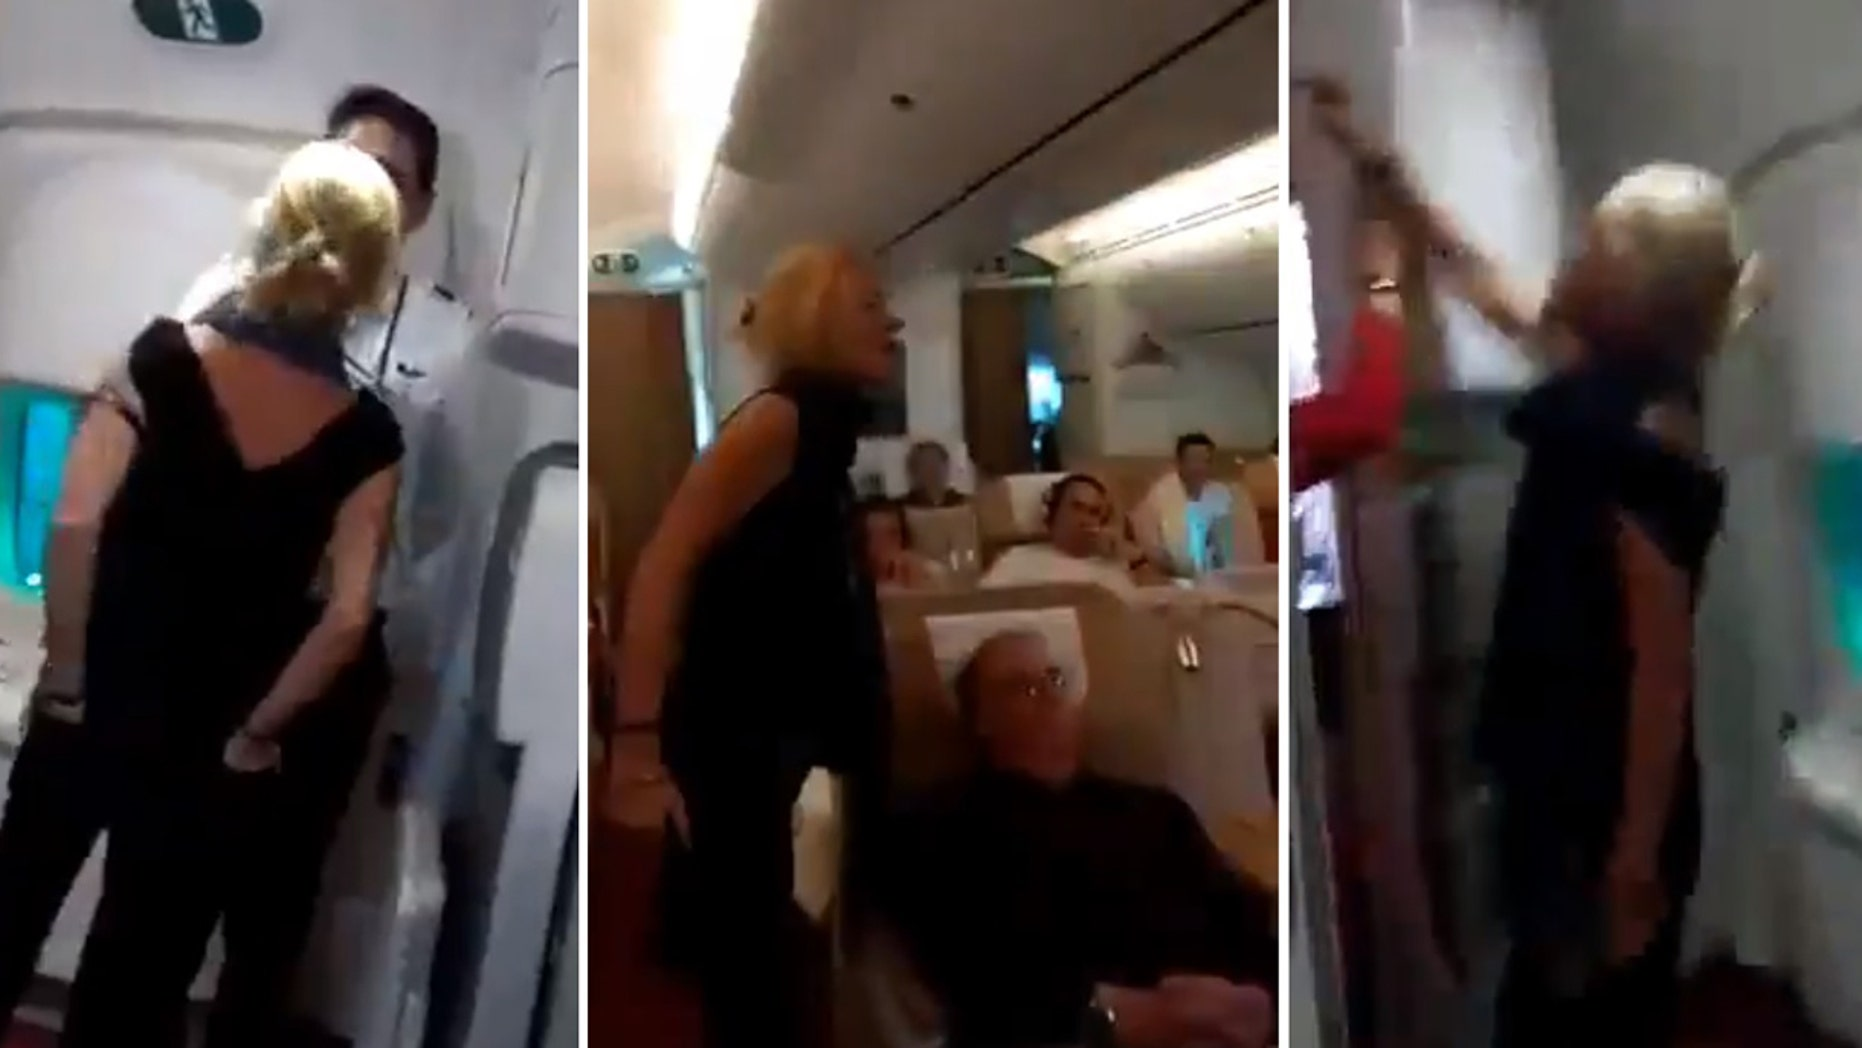 Simone O'Broin, 50, was arrested after a racist, drunken assault of Air India crew. The Northern Irish woman is a prominent BDS leader who threatened the Indian crew with a boycott.